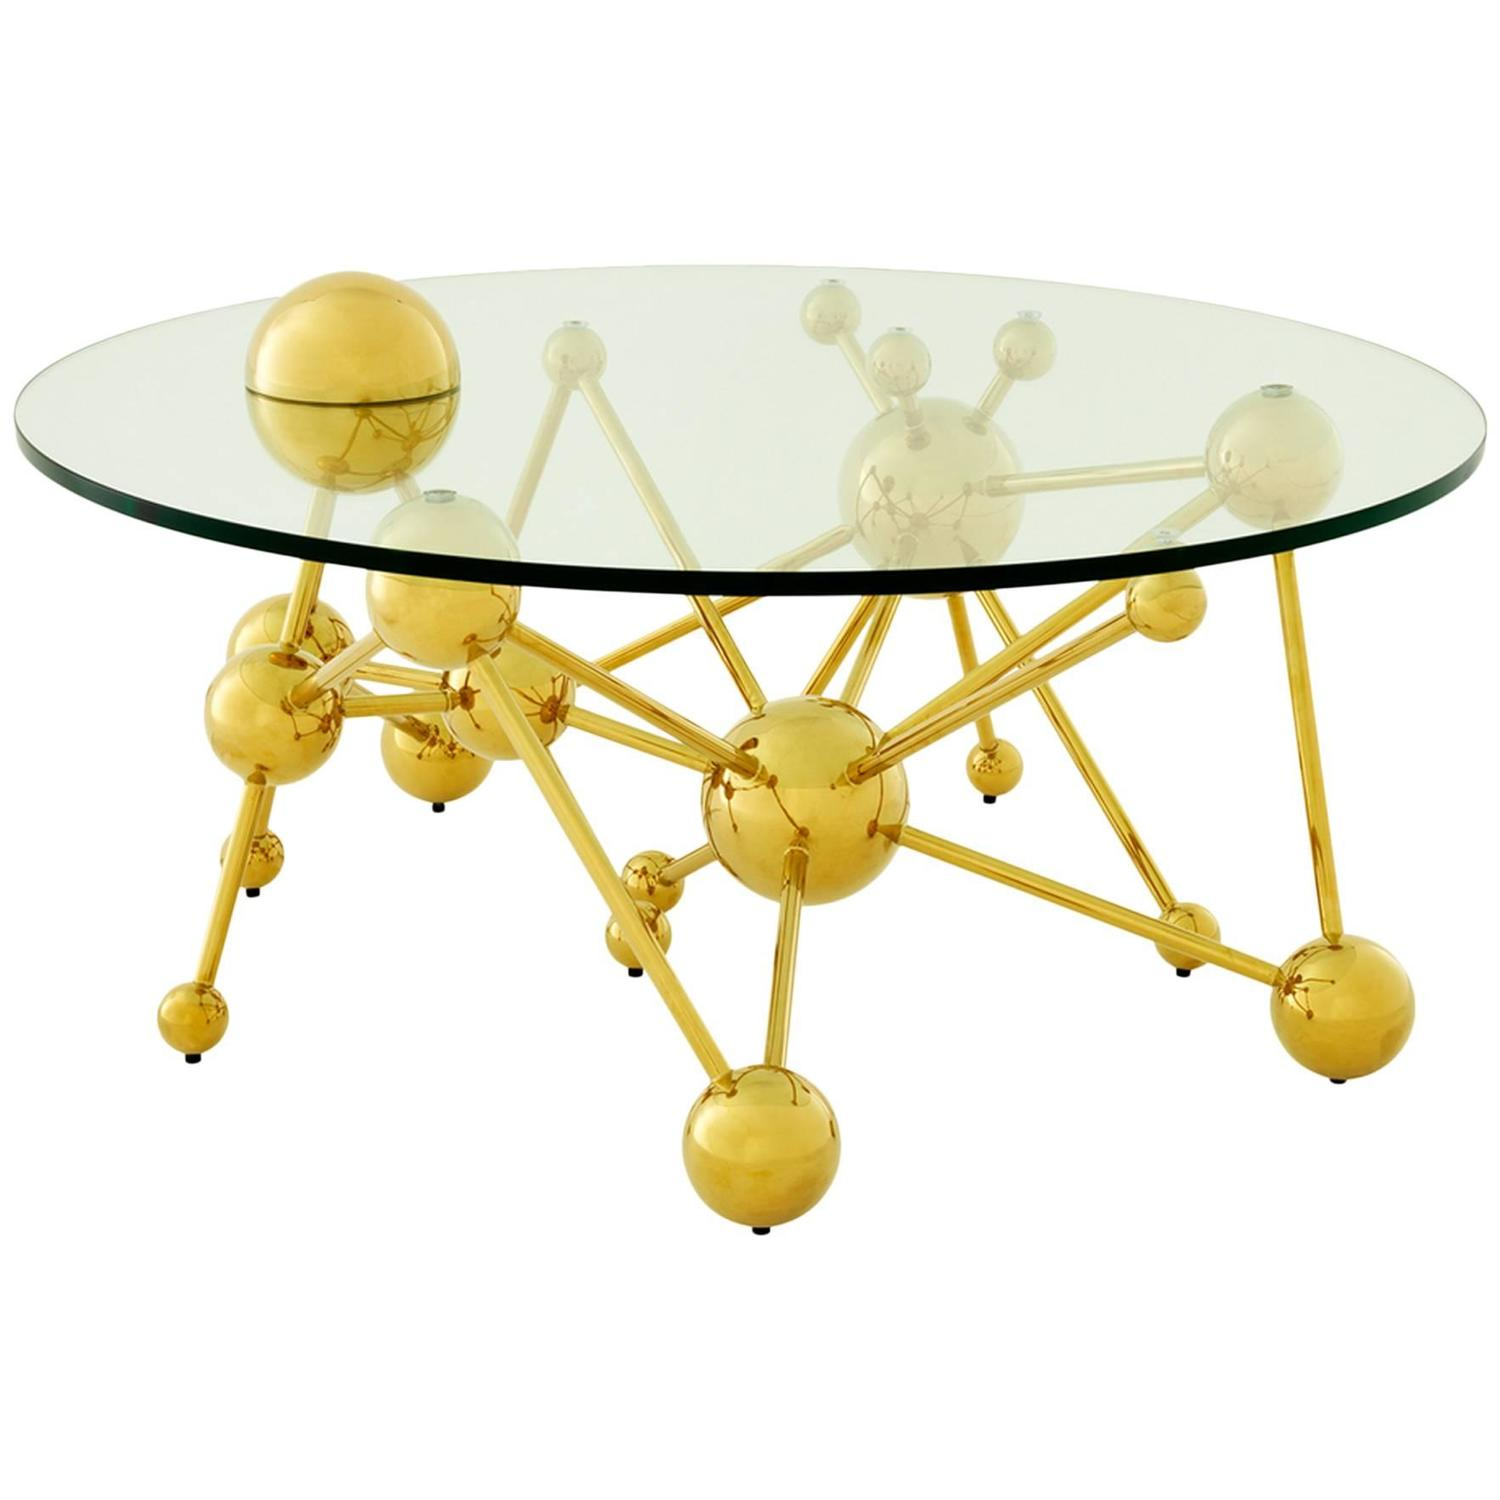 Antique Glass Coffee Table Gold: Coffee Table Sputnik With Gold Finish Structure And Clear